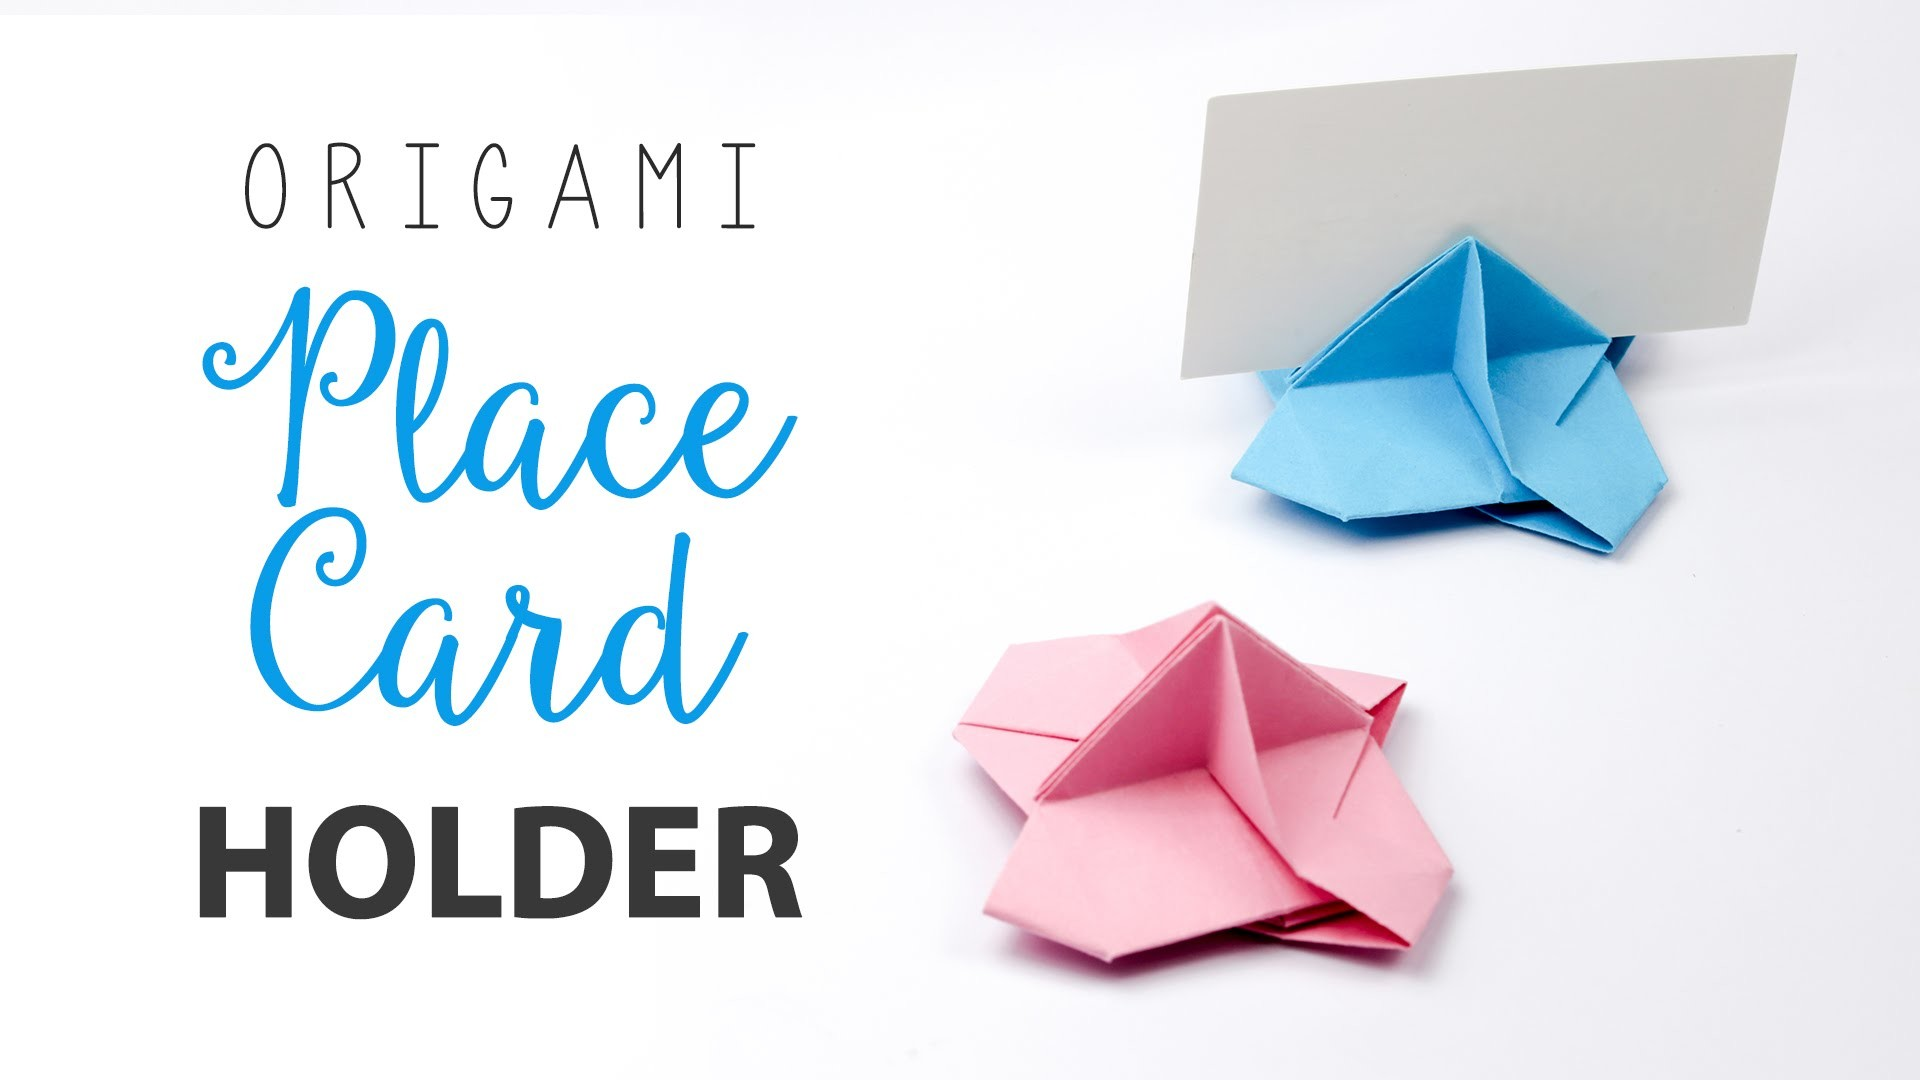 Origami Place Card Holder Tutorial ♥︎ Card Stand DIY ♥︎